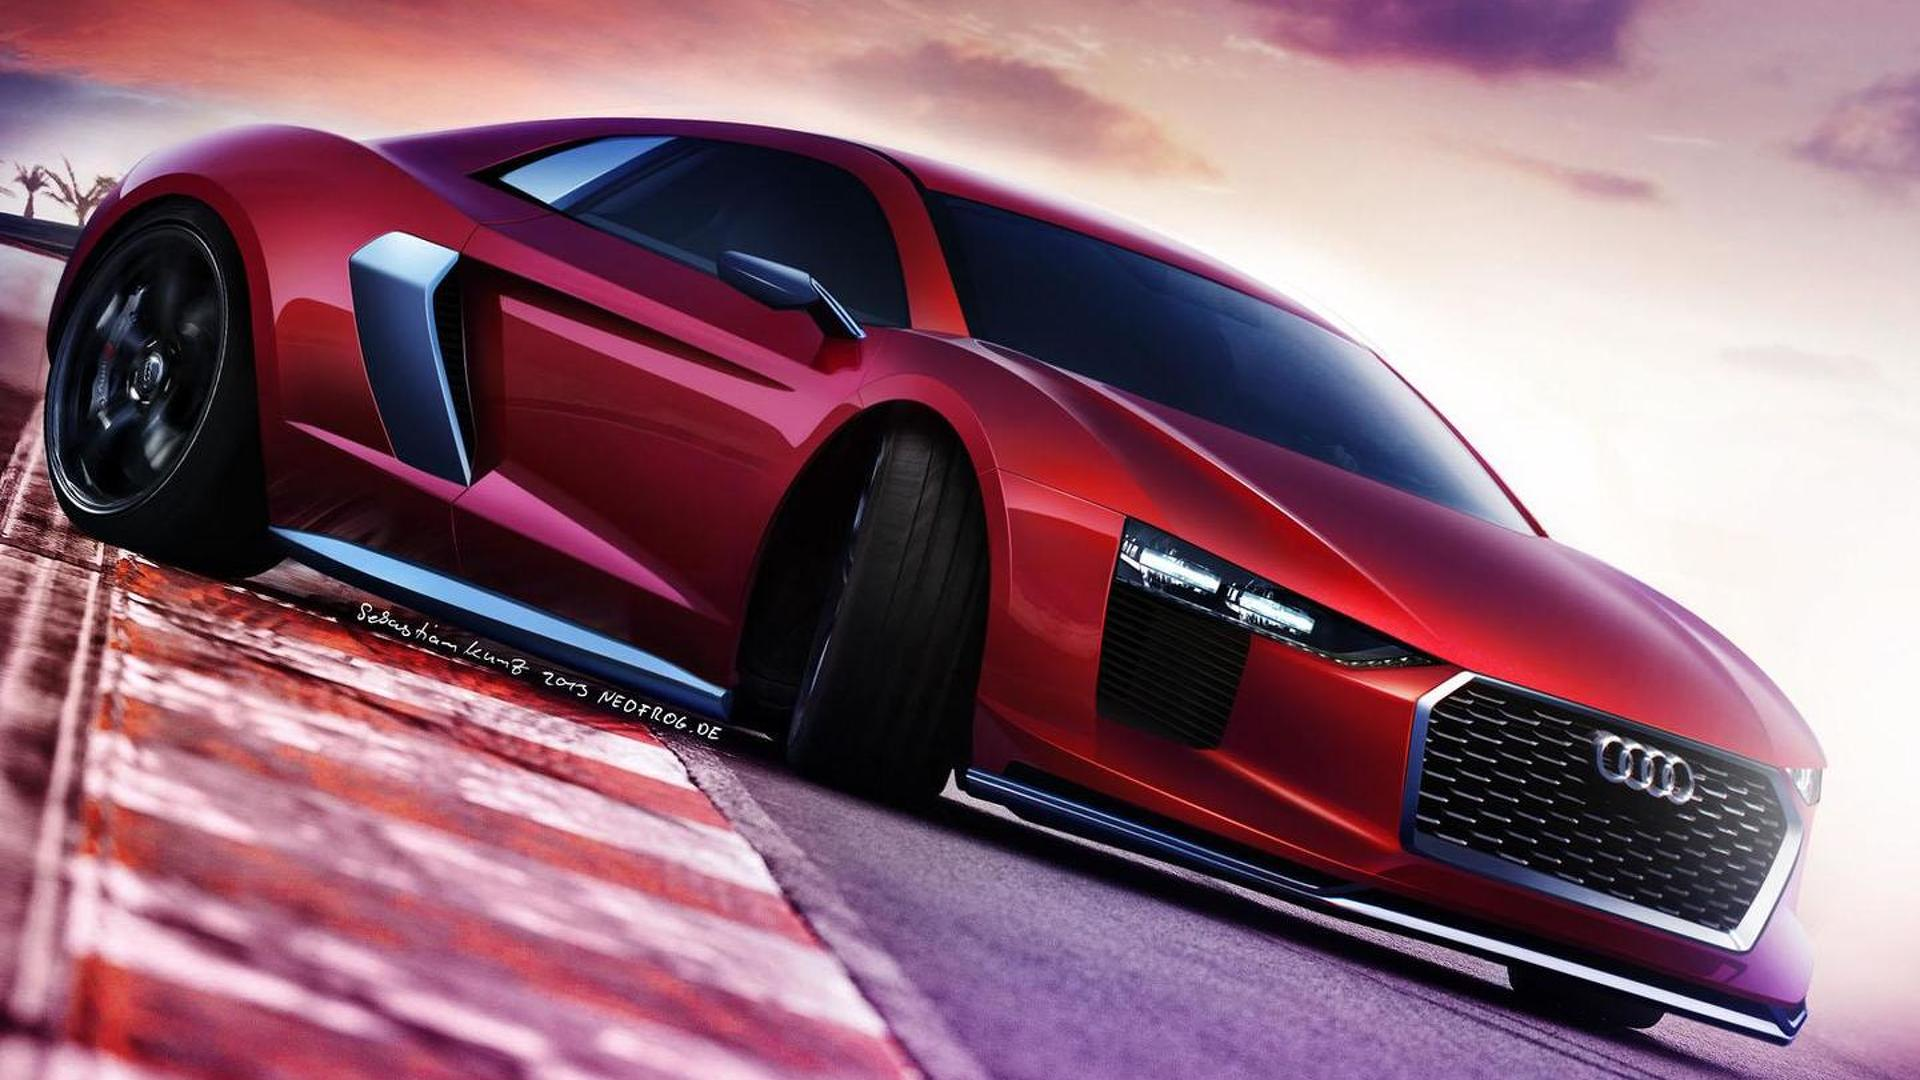 Audi technical chief says next-gen R8 will eventually receive a smaller turbocharged engine